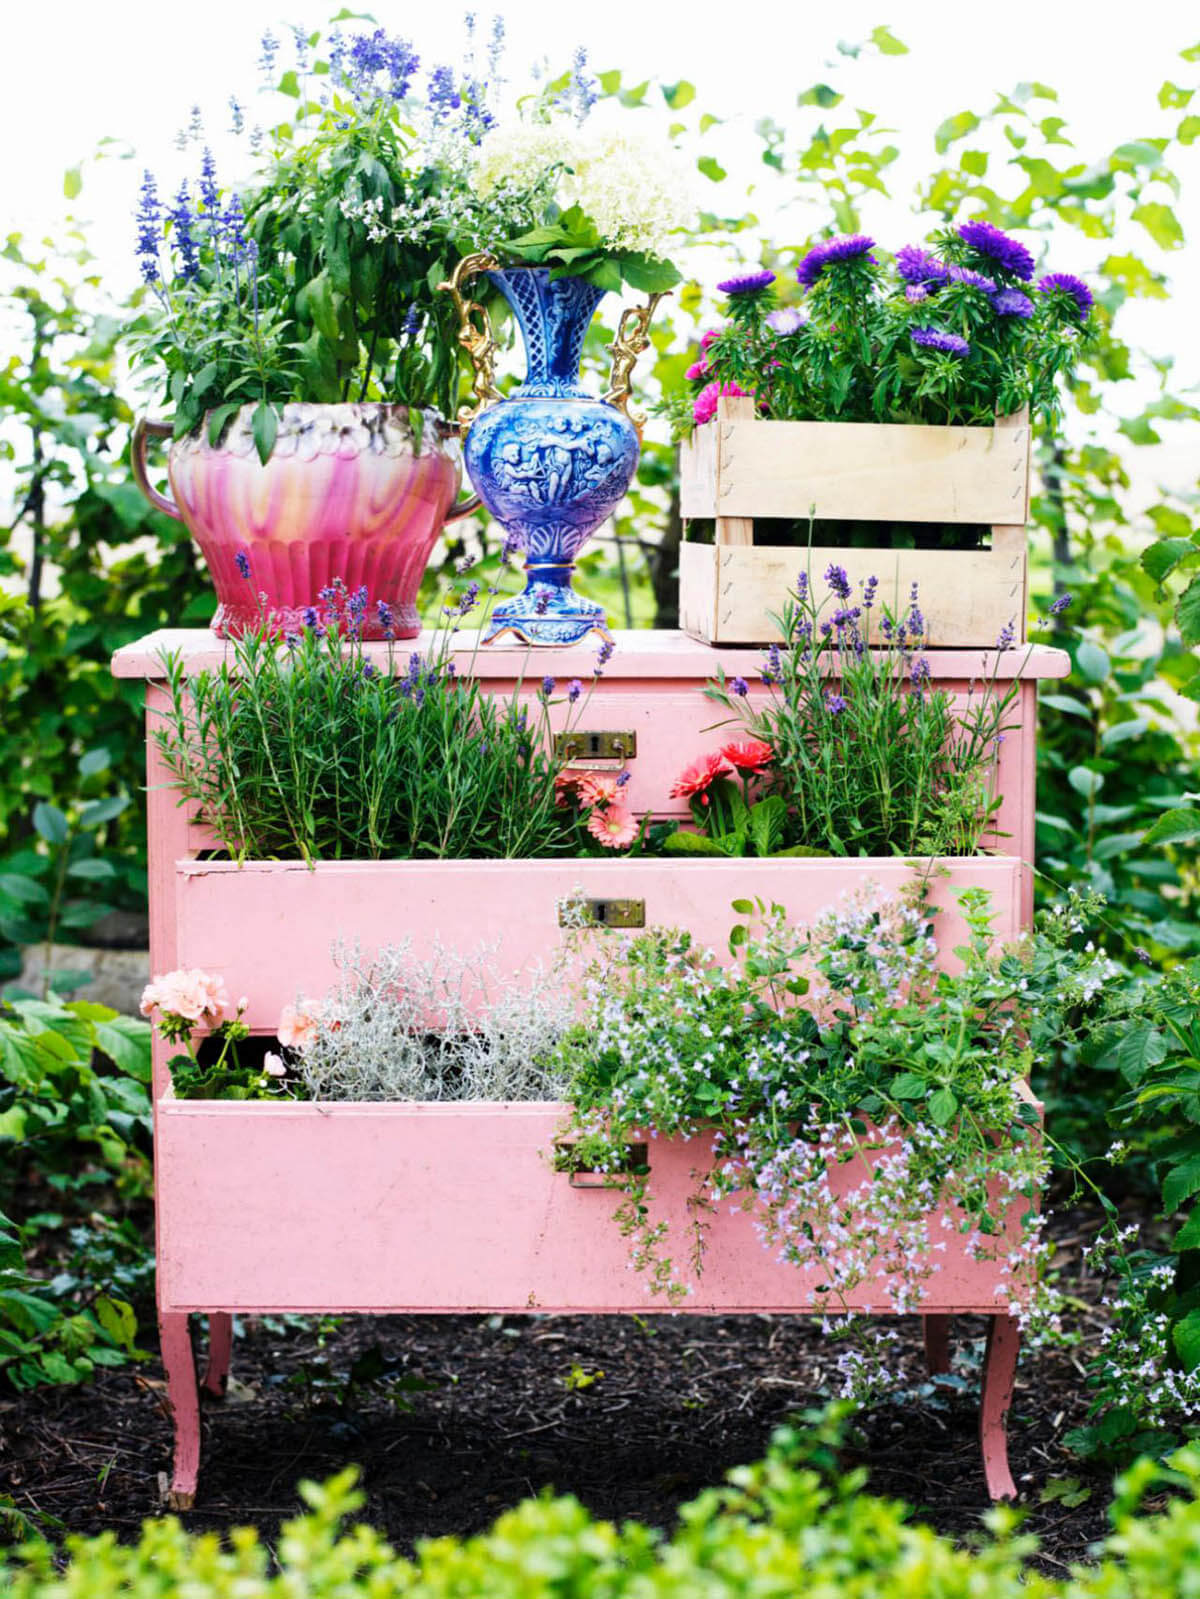 34 Best Vintage Garden Decor Ideas and Designs for 2020 on Backyard Decorating Ideas  id=76997